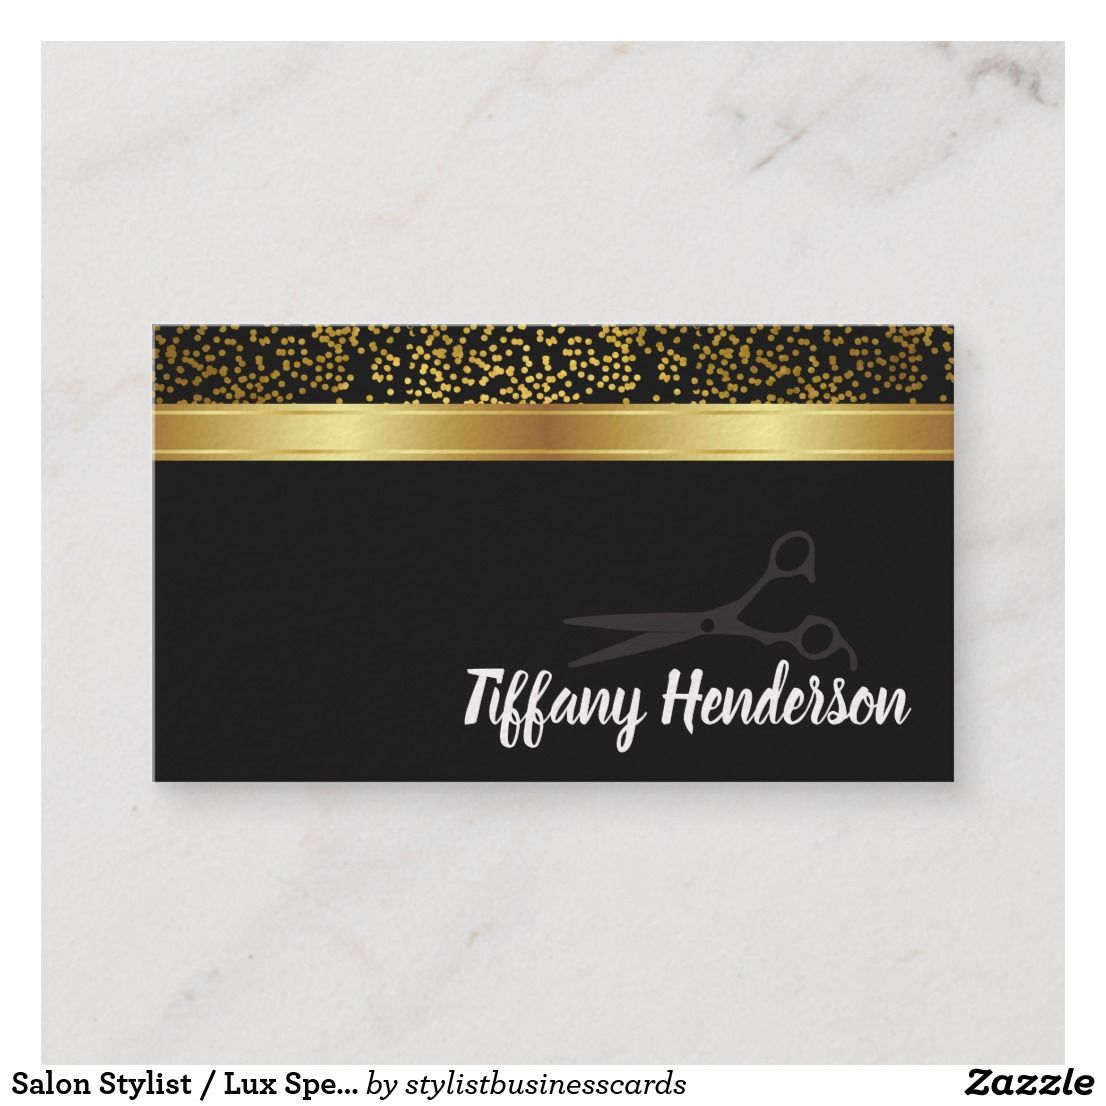 Salon Stylist Lux Speckled Business Card Zazzle Com Business Cards Cards Speckle